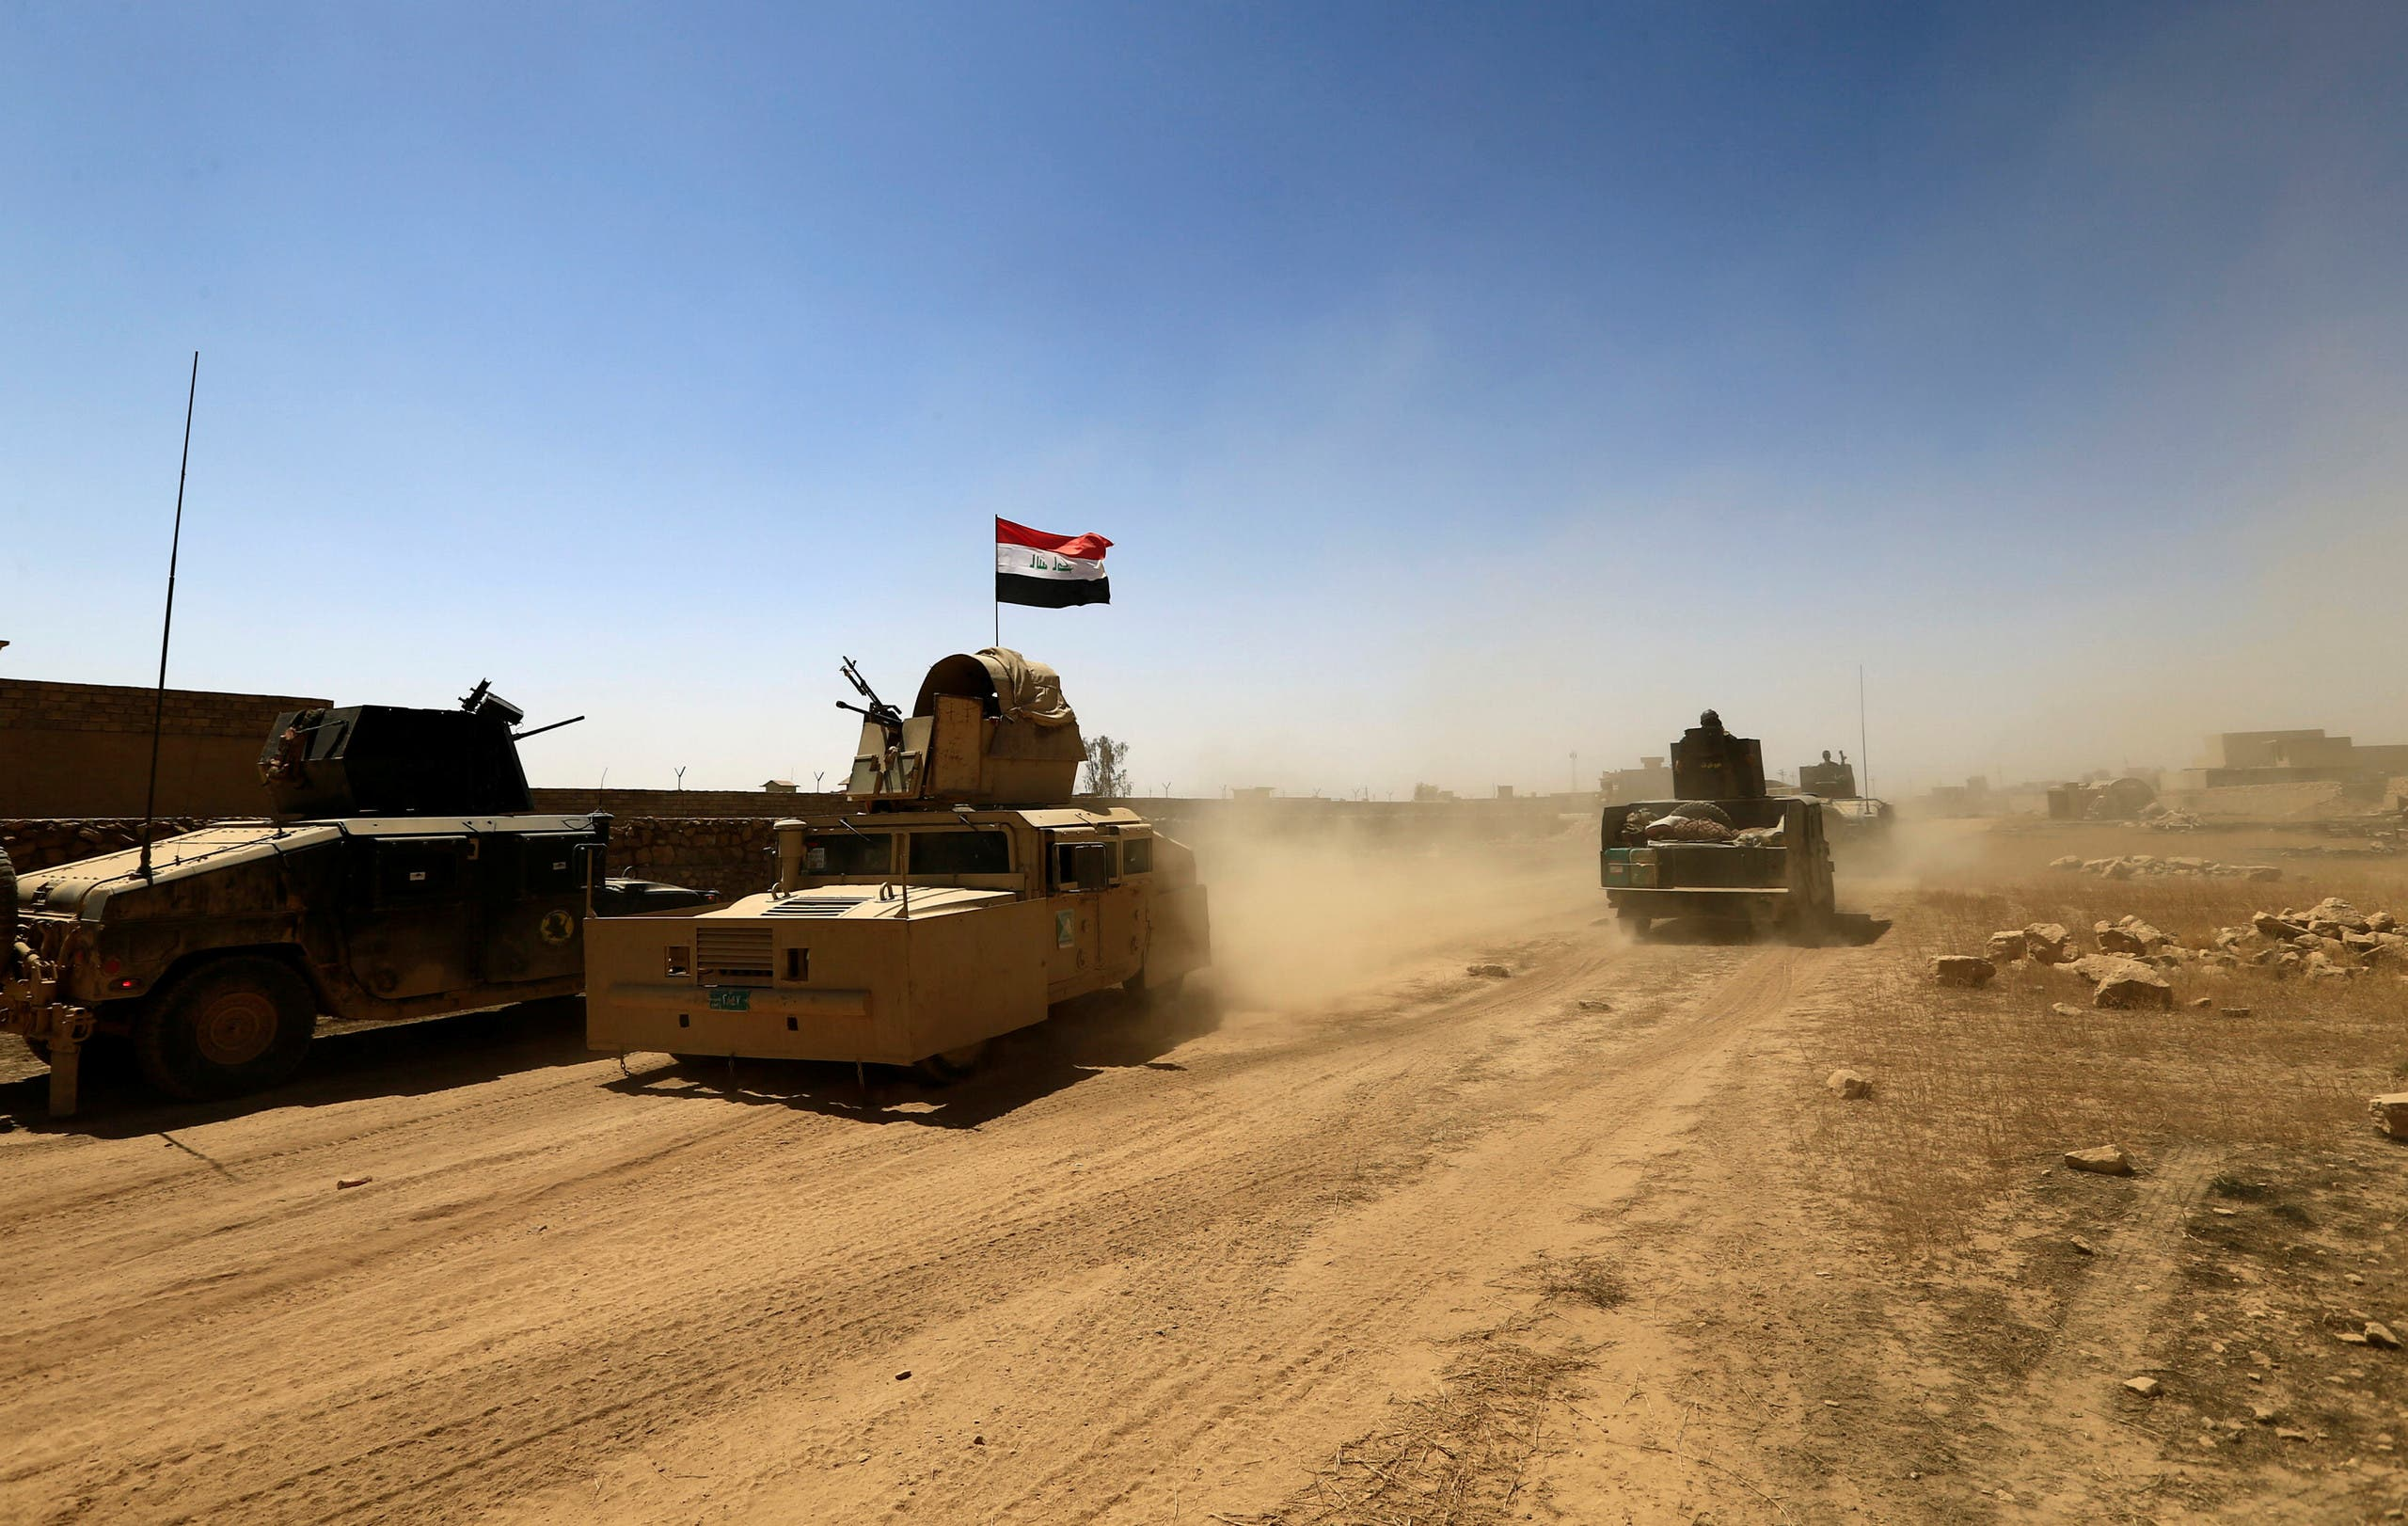 Military vehicles of the Counter Terrorism Service (CTS) are seen during the fight with ISIS fighters in Tal Afar, Iraq, August 25, 2017. (File photo: Reuters)